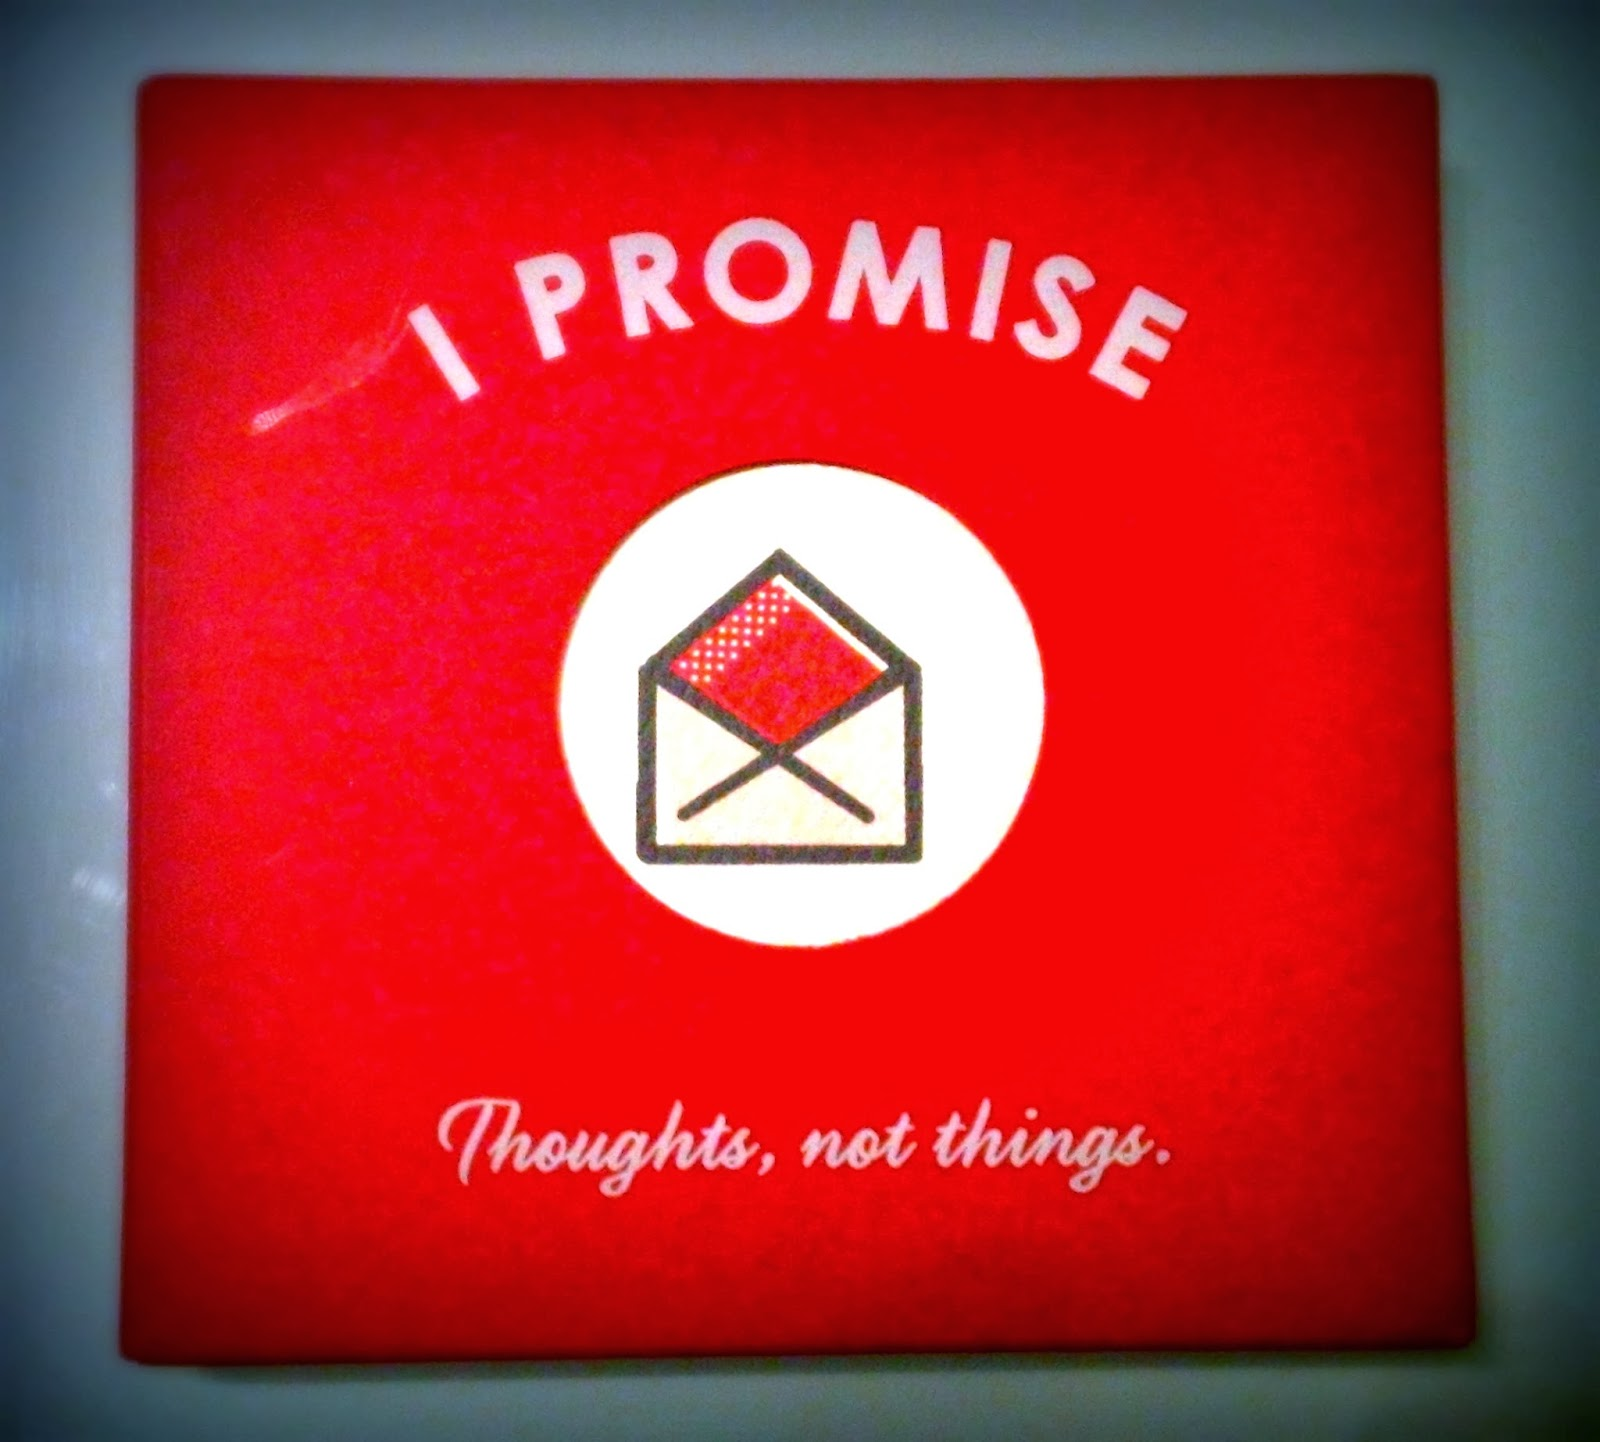 I Promise Cards, St Valentines Gifts, Valentine's Day, Presents for Women, Unusual Wedding Proposals